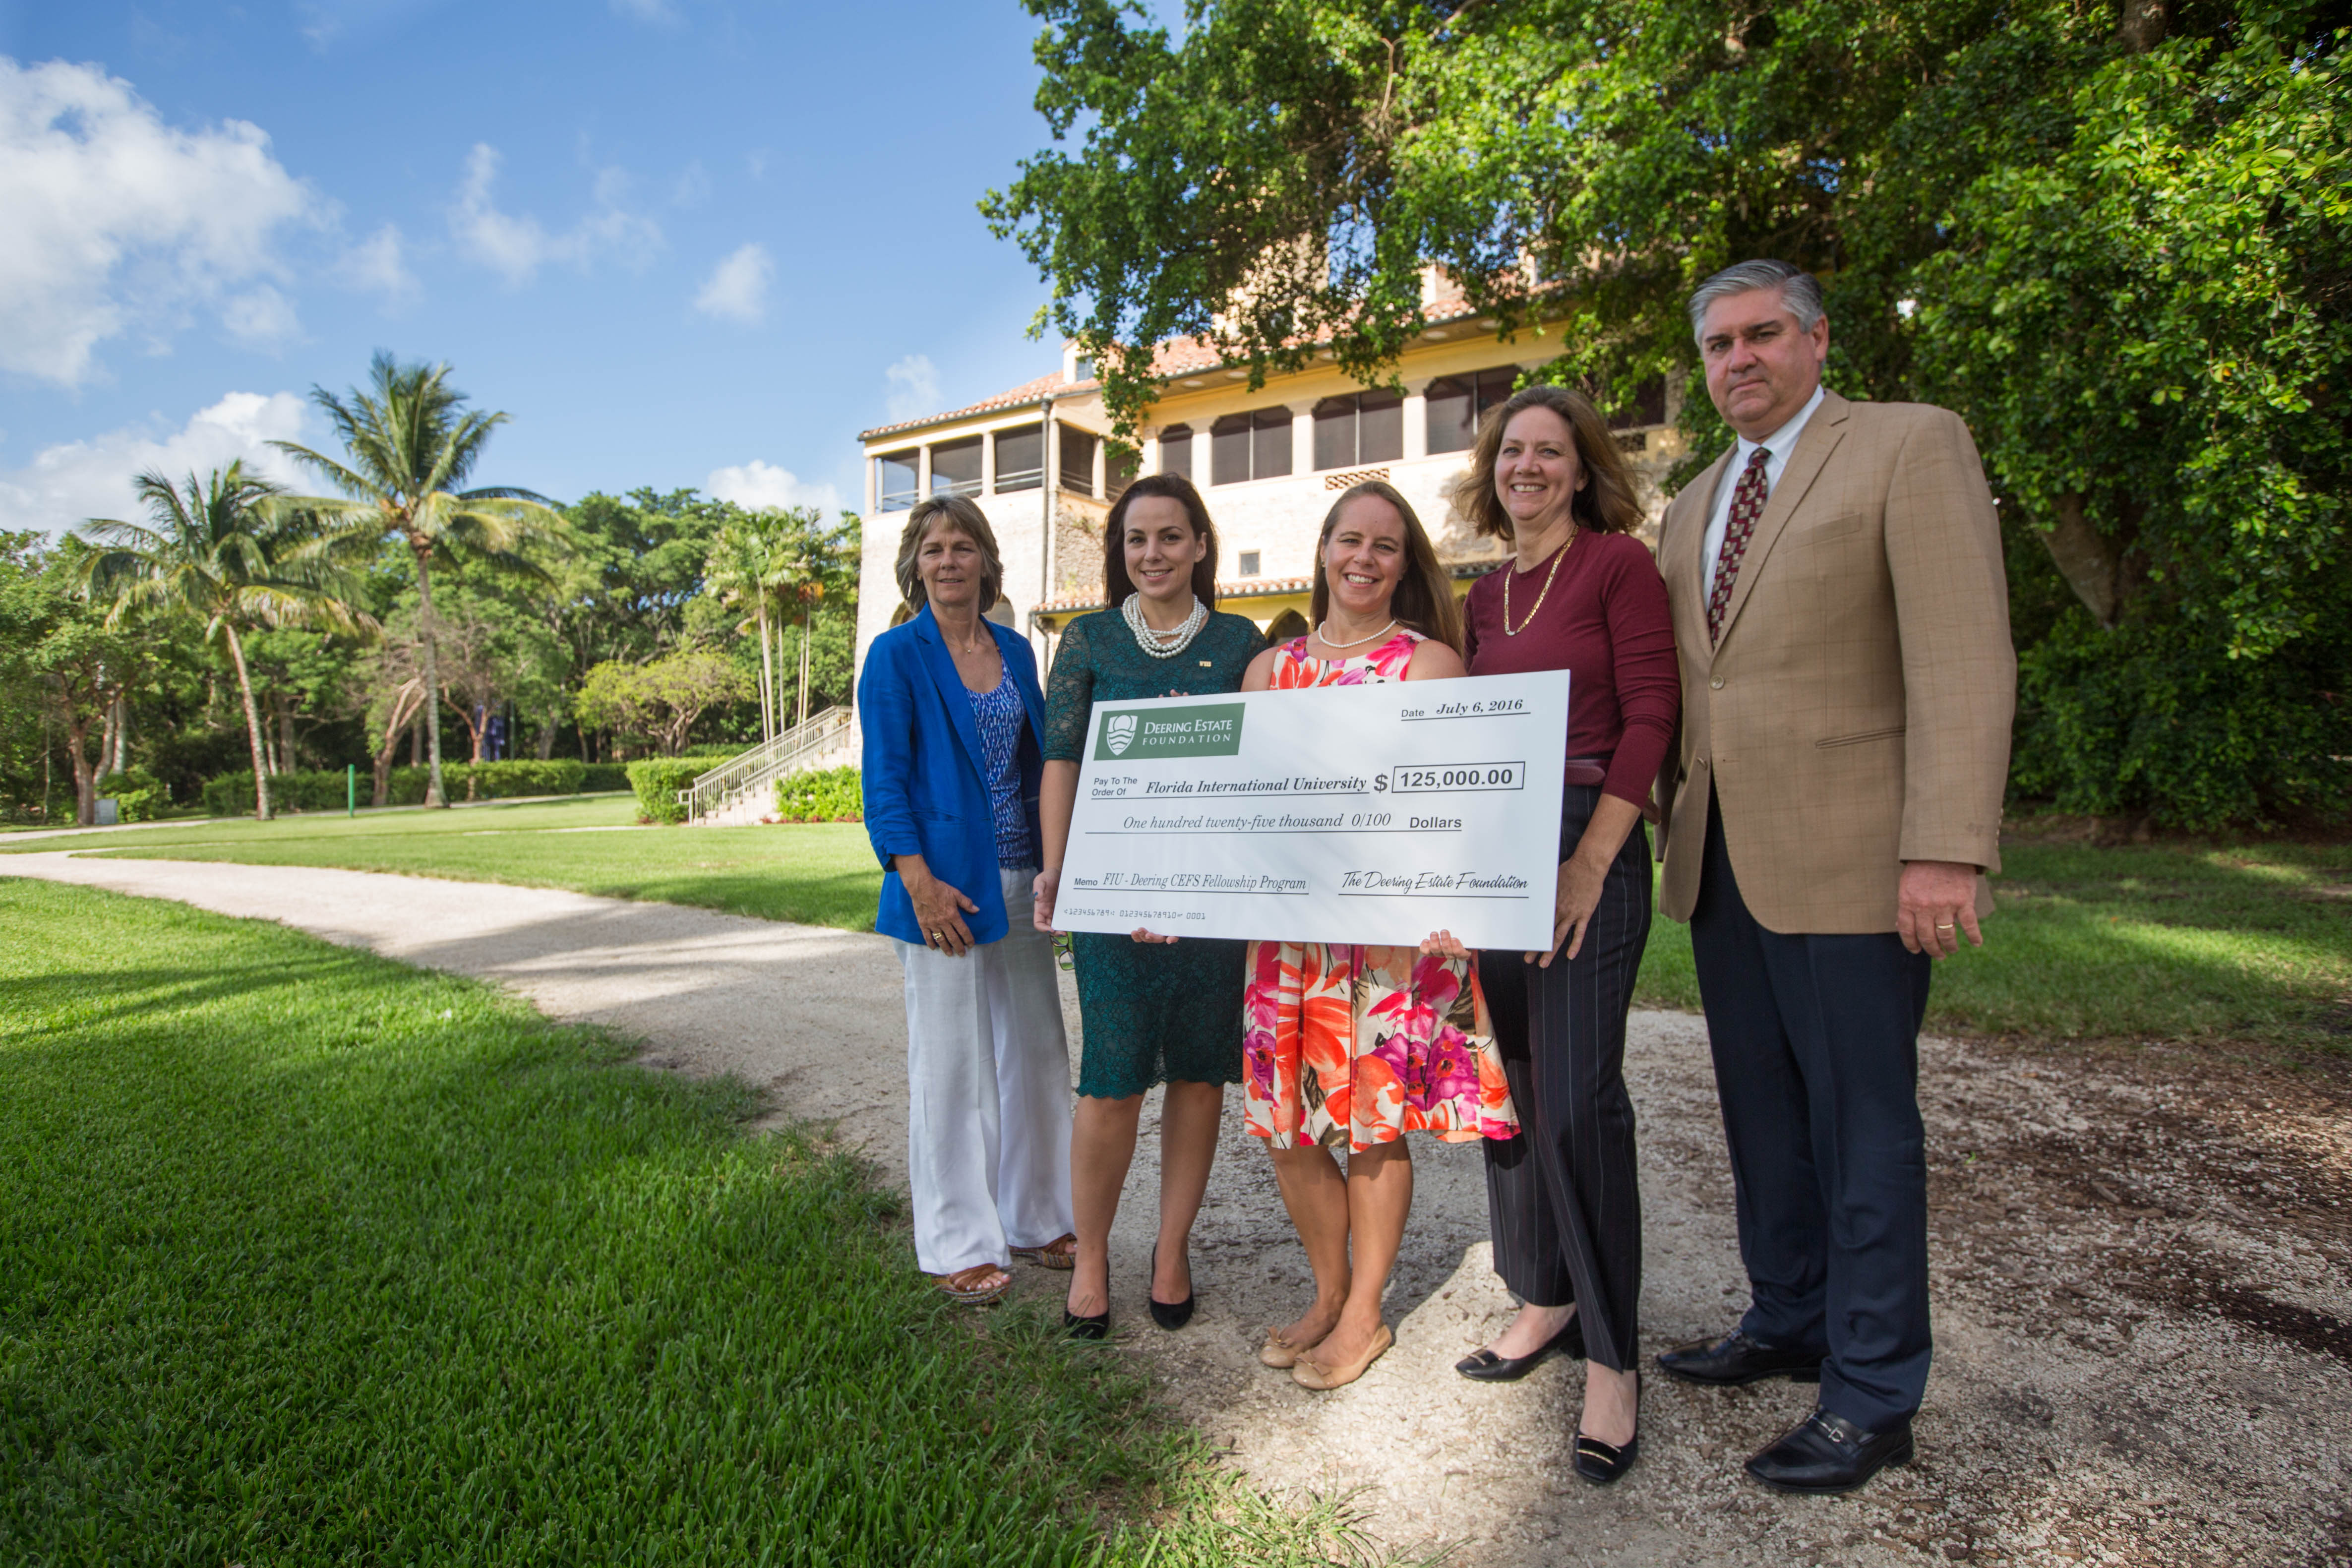 FIU and Deering Estate have launched the FIU-Deering Cultural Ecological Field Station Fellowship Program to fund Ph.D. students whose research will benefit conservation management efforts at the estate and in the region.